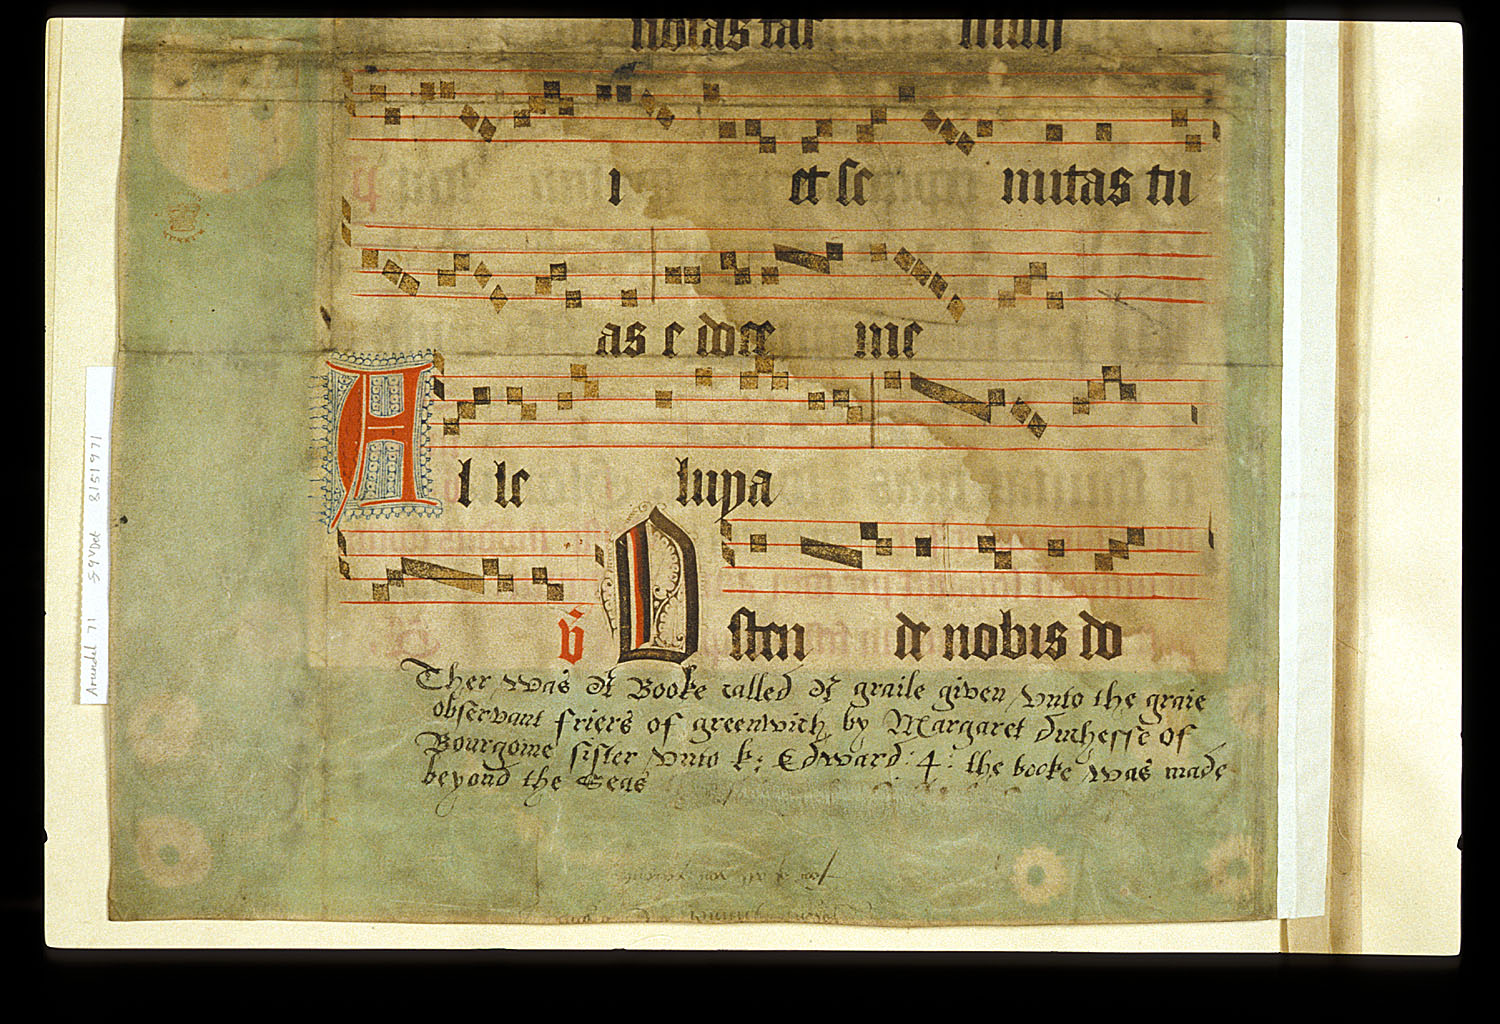 4 staves of music, text written in Latn